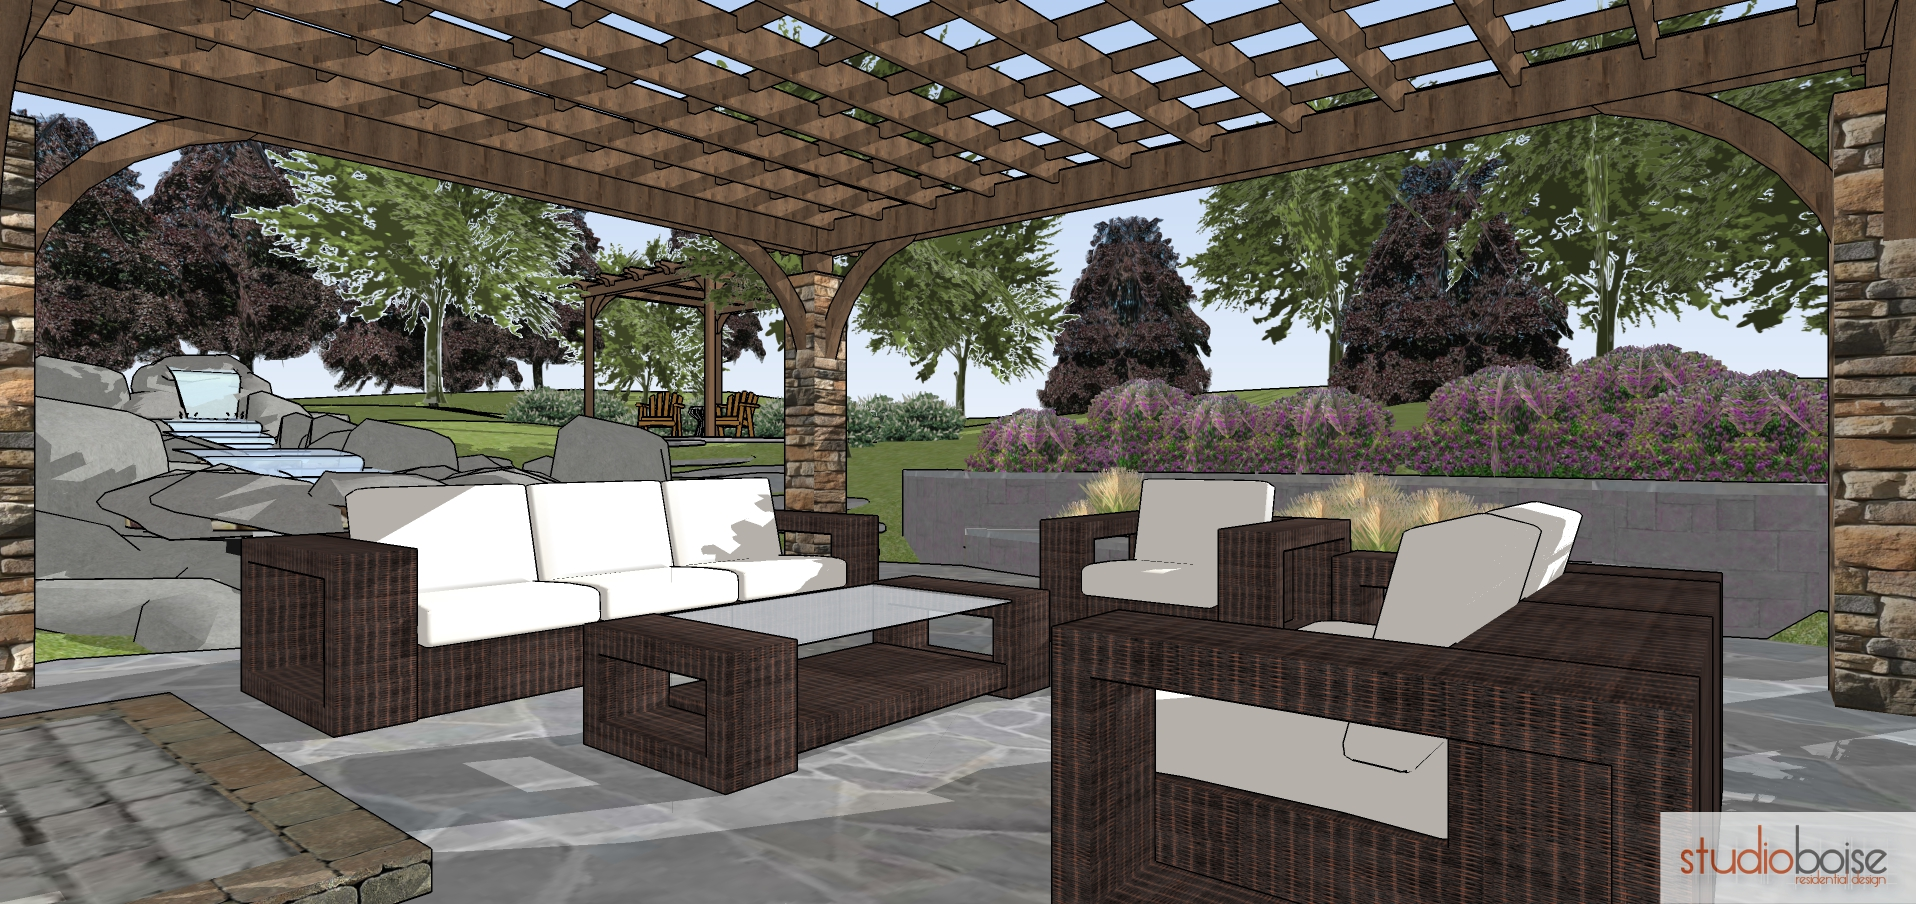 Design with landscape in mind studio boise residential for Landscape design boise